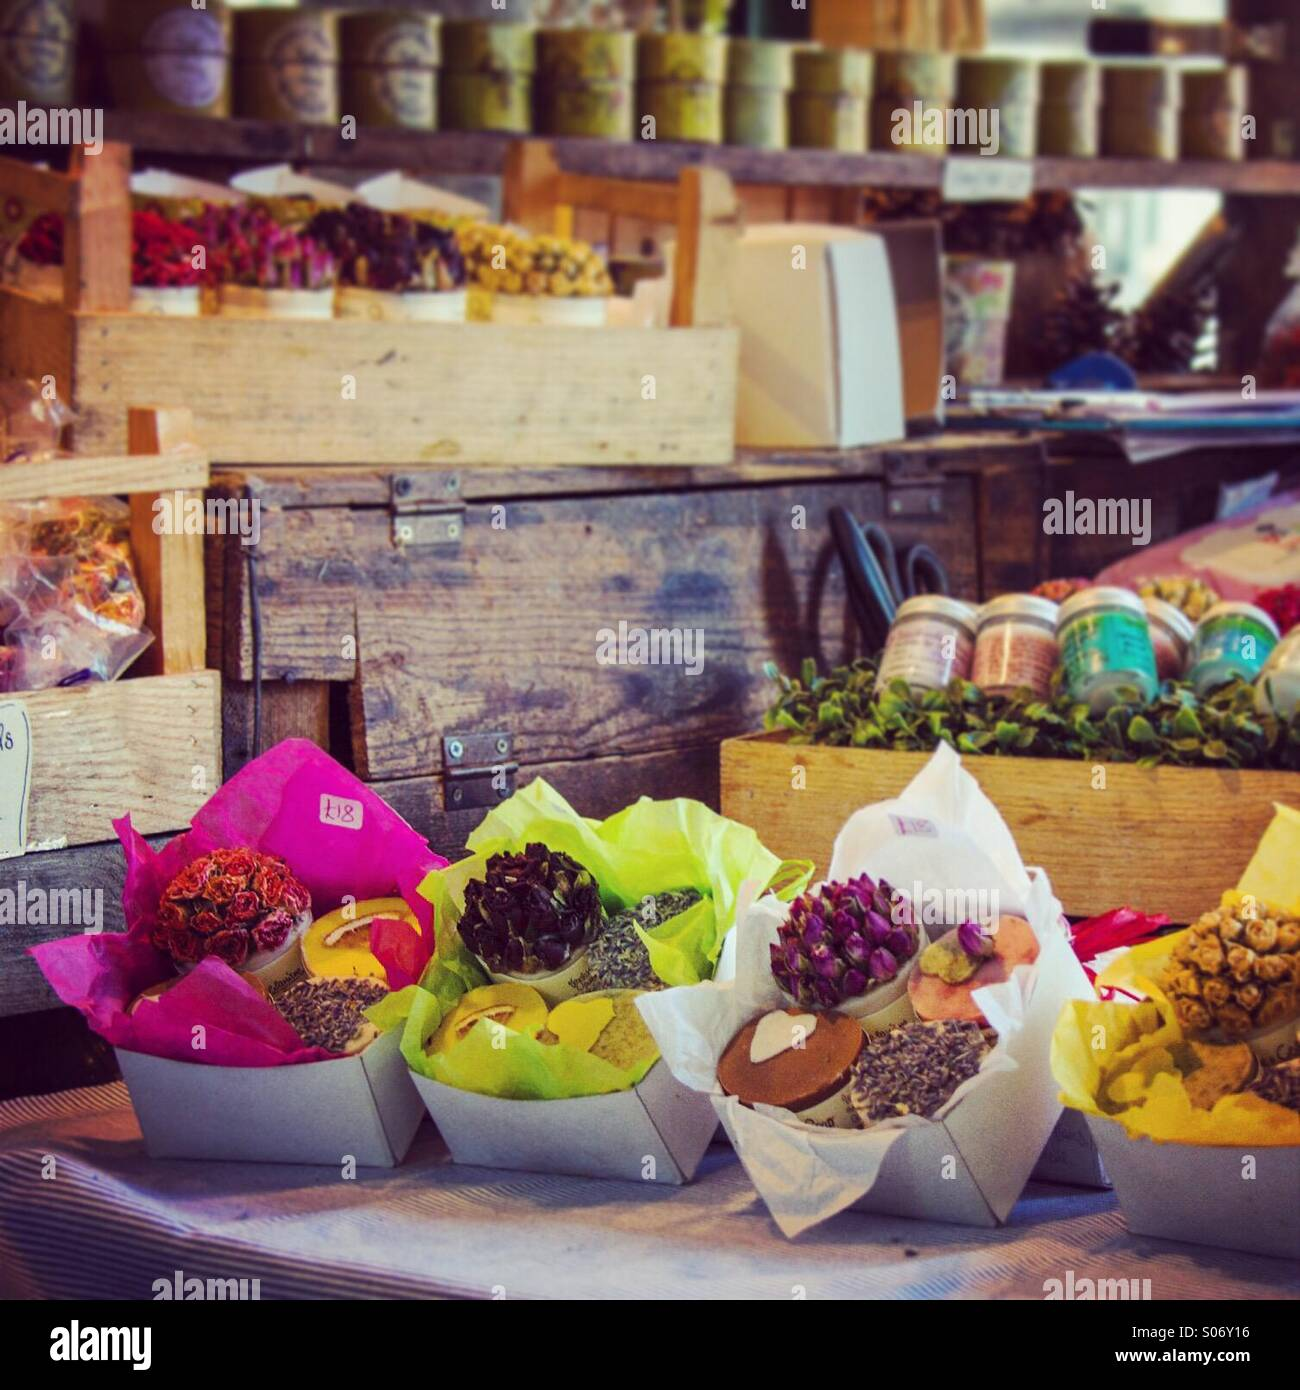 Market stall selling hand crafted gifts - Stock Image